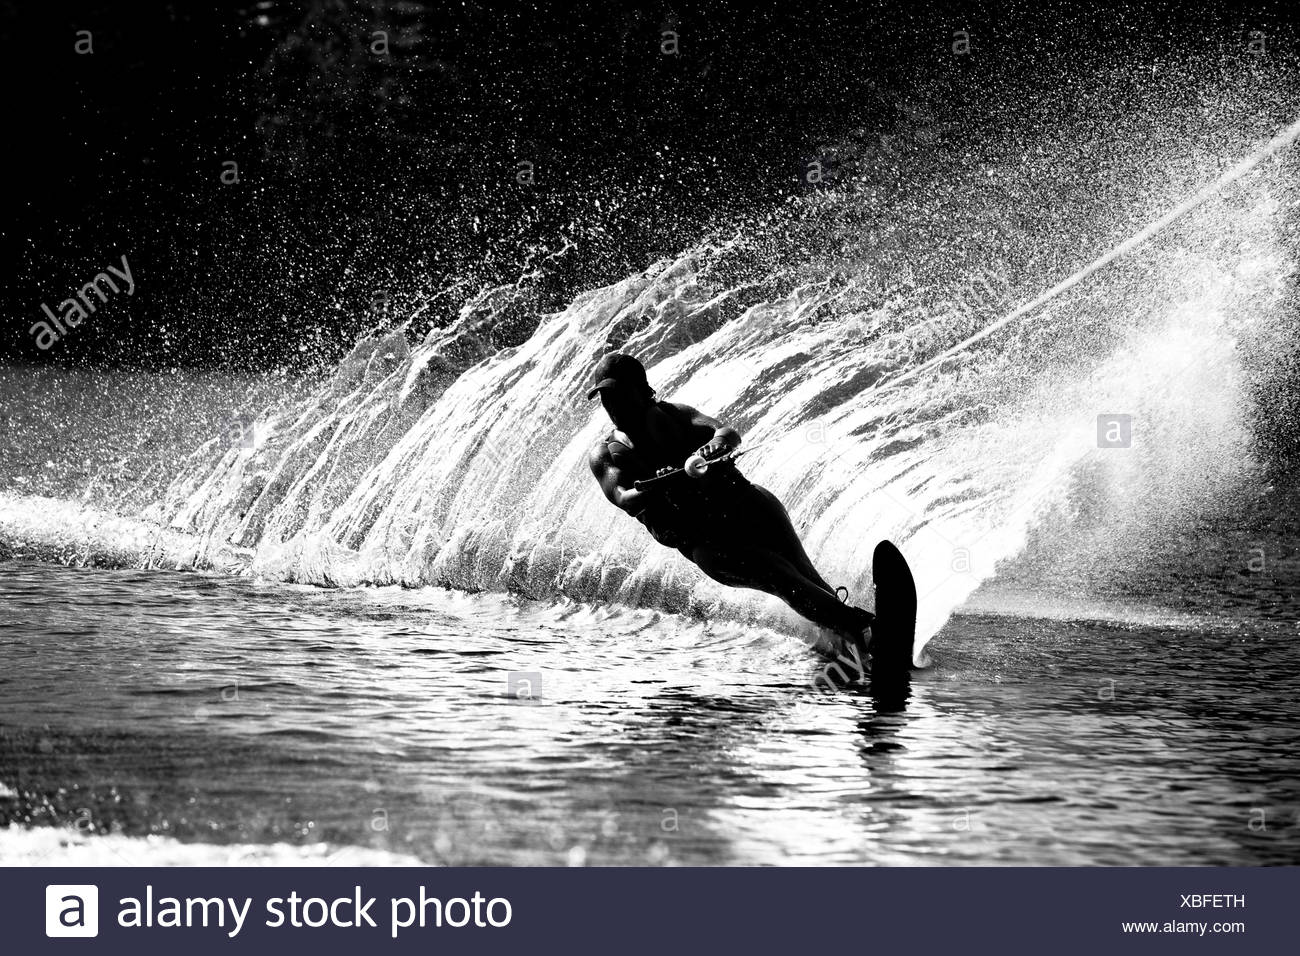 A female water skier rips a turn causing a huge water spray while skiing on Cobbosseecontee Lake near Monmouth, Maine. - Stock Image